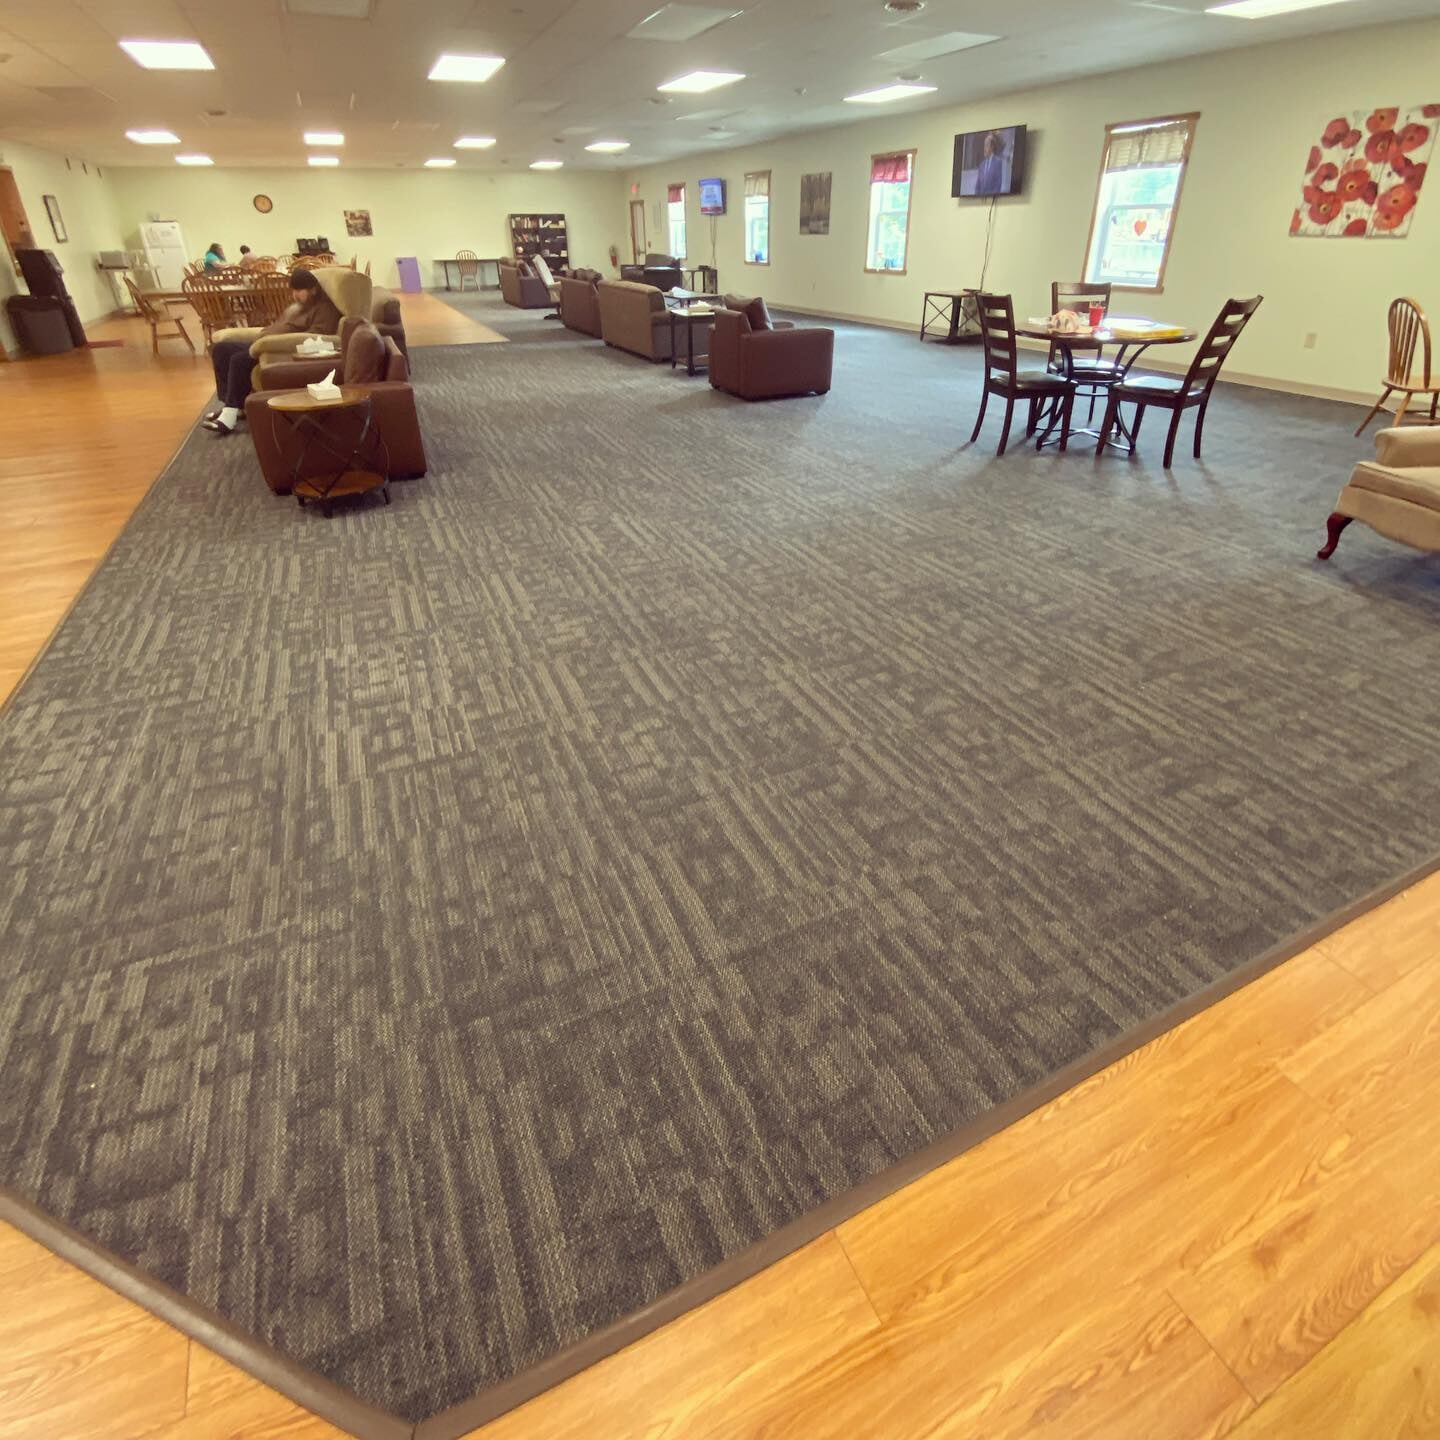 Commercial flooring installation in Pottstown, PA from Freedom Flooring